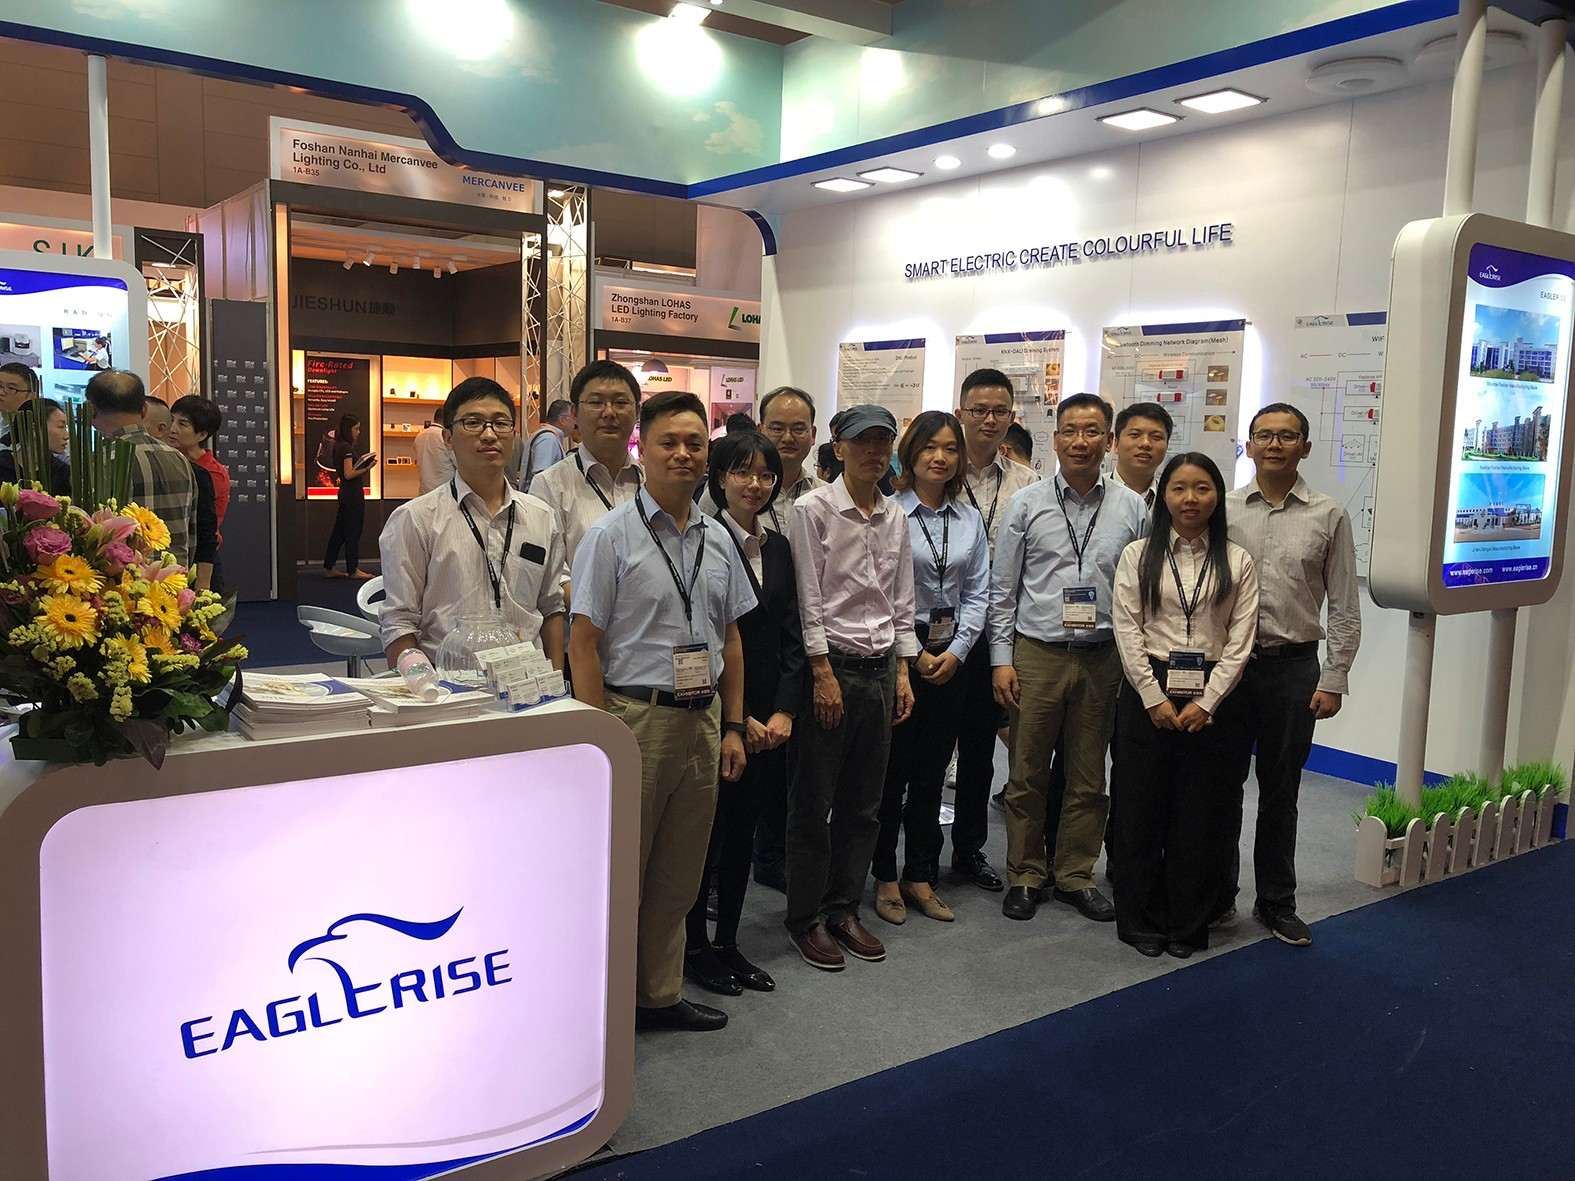 Eaglerise participated in the 2018 Hongkong Lighting Fair (Autumn) with intelligent LED driver products.